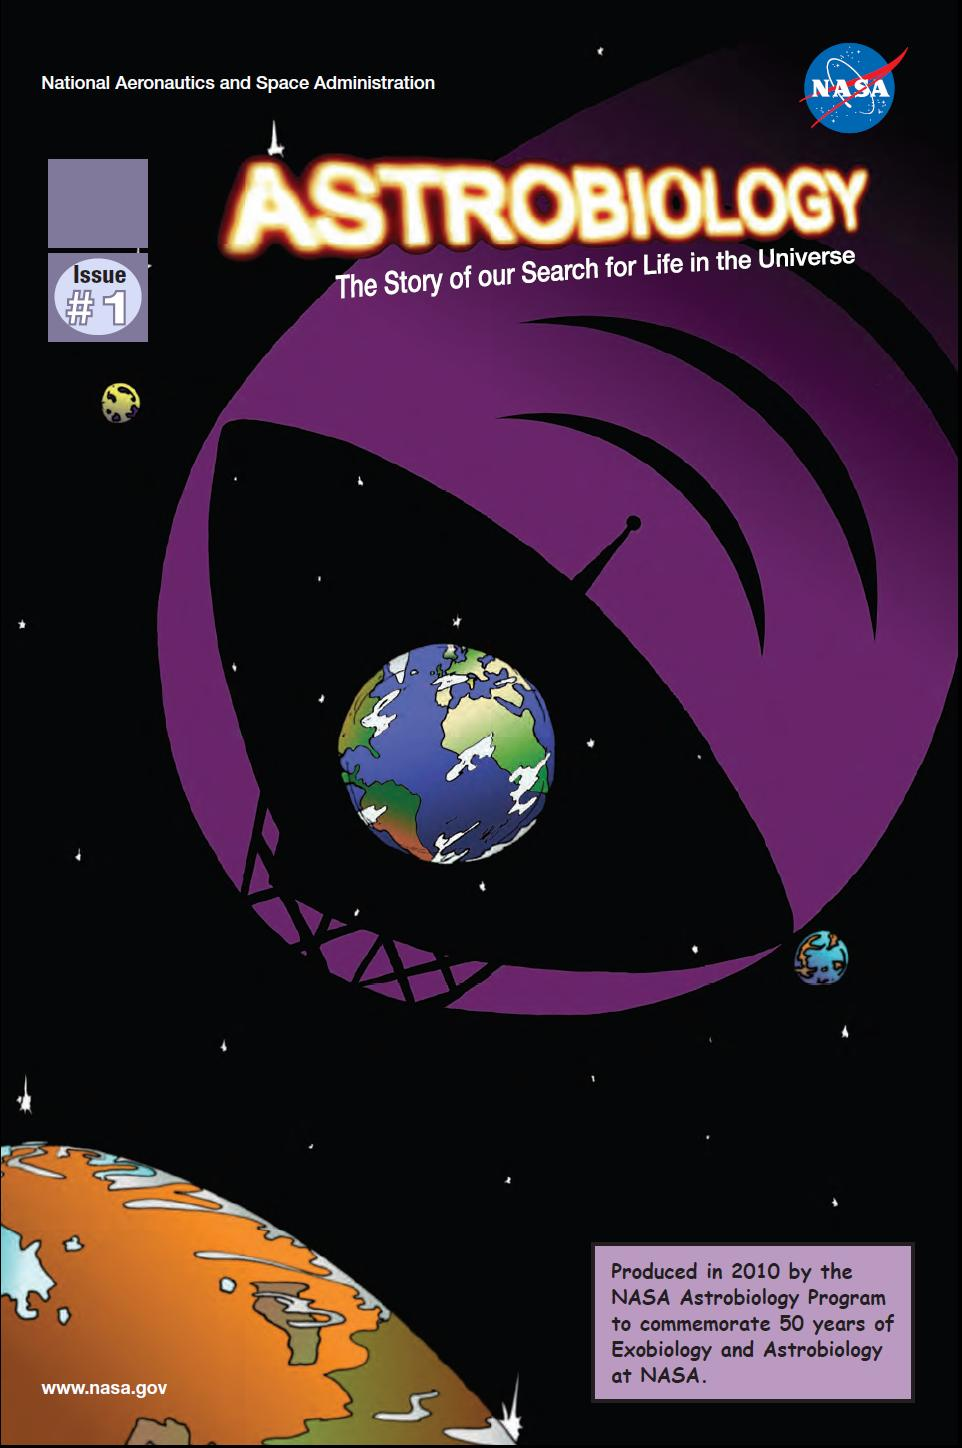 High Definition Ebooks: NASA Astrobiology Magazines 1-3 Issues